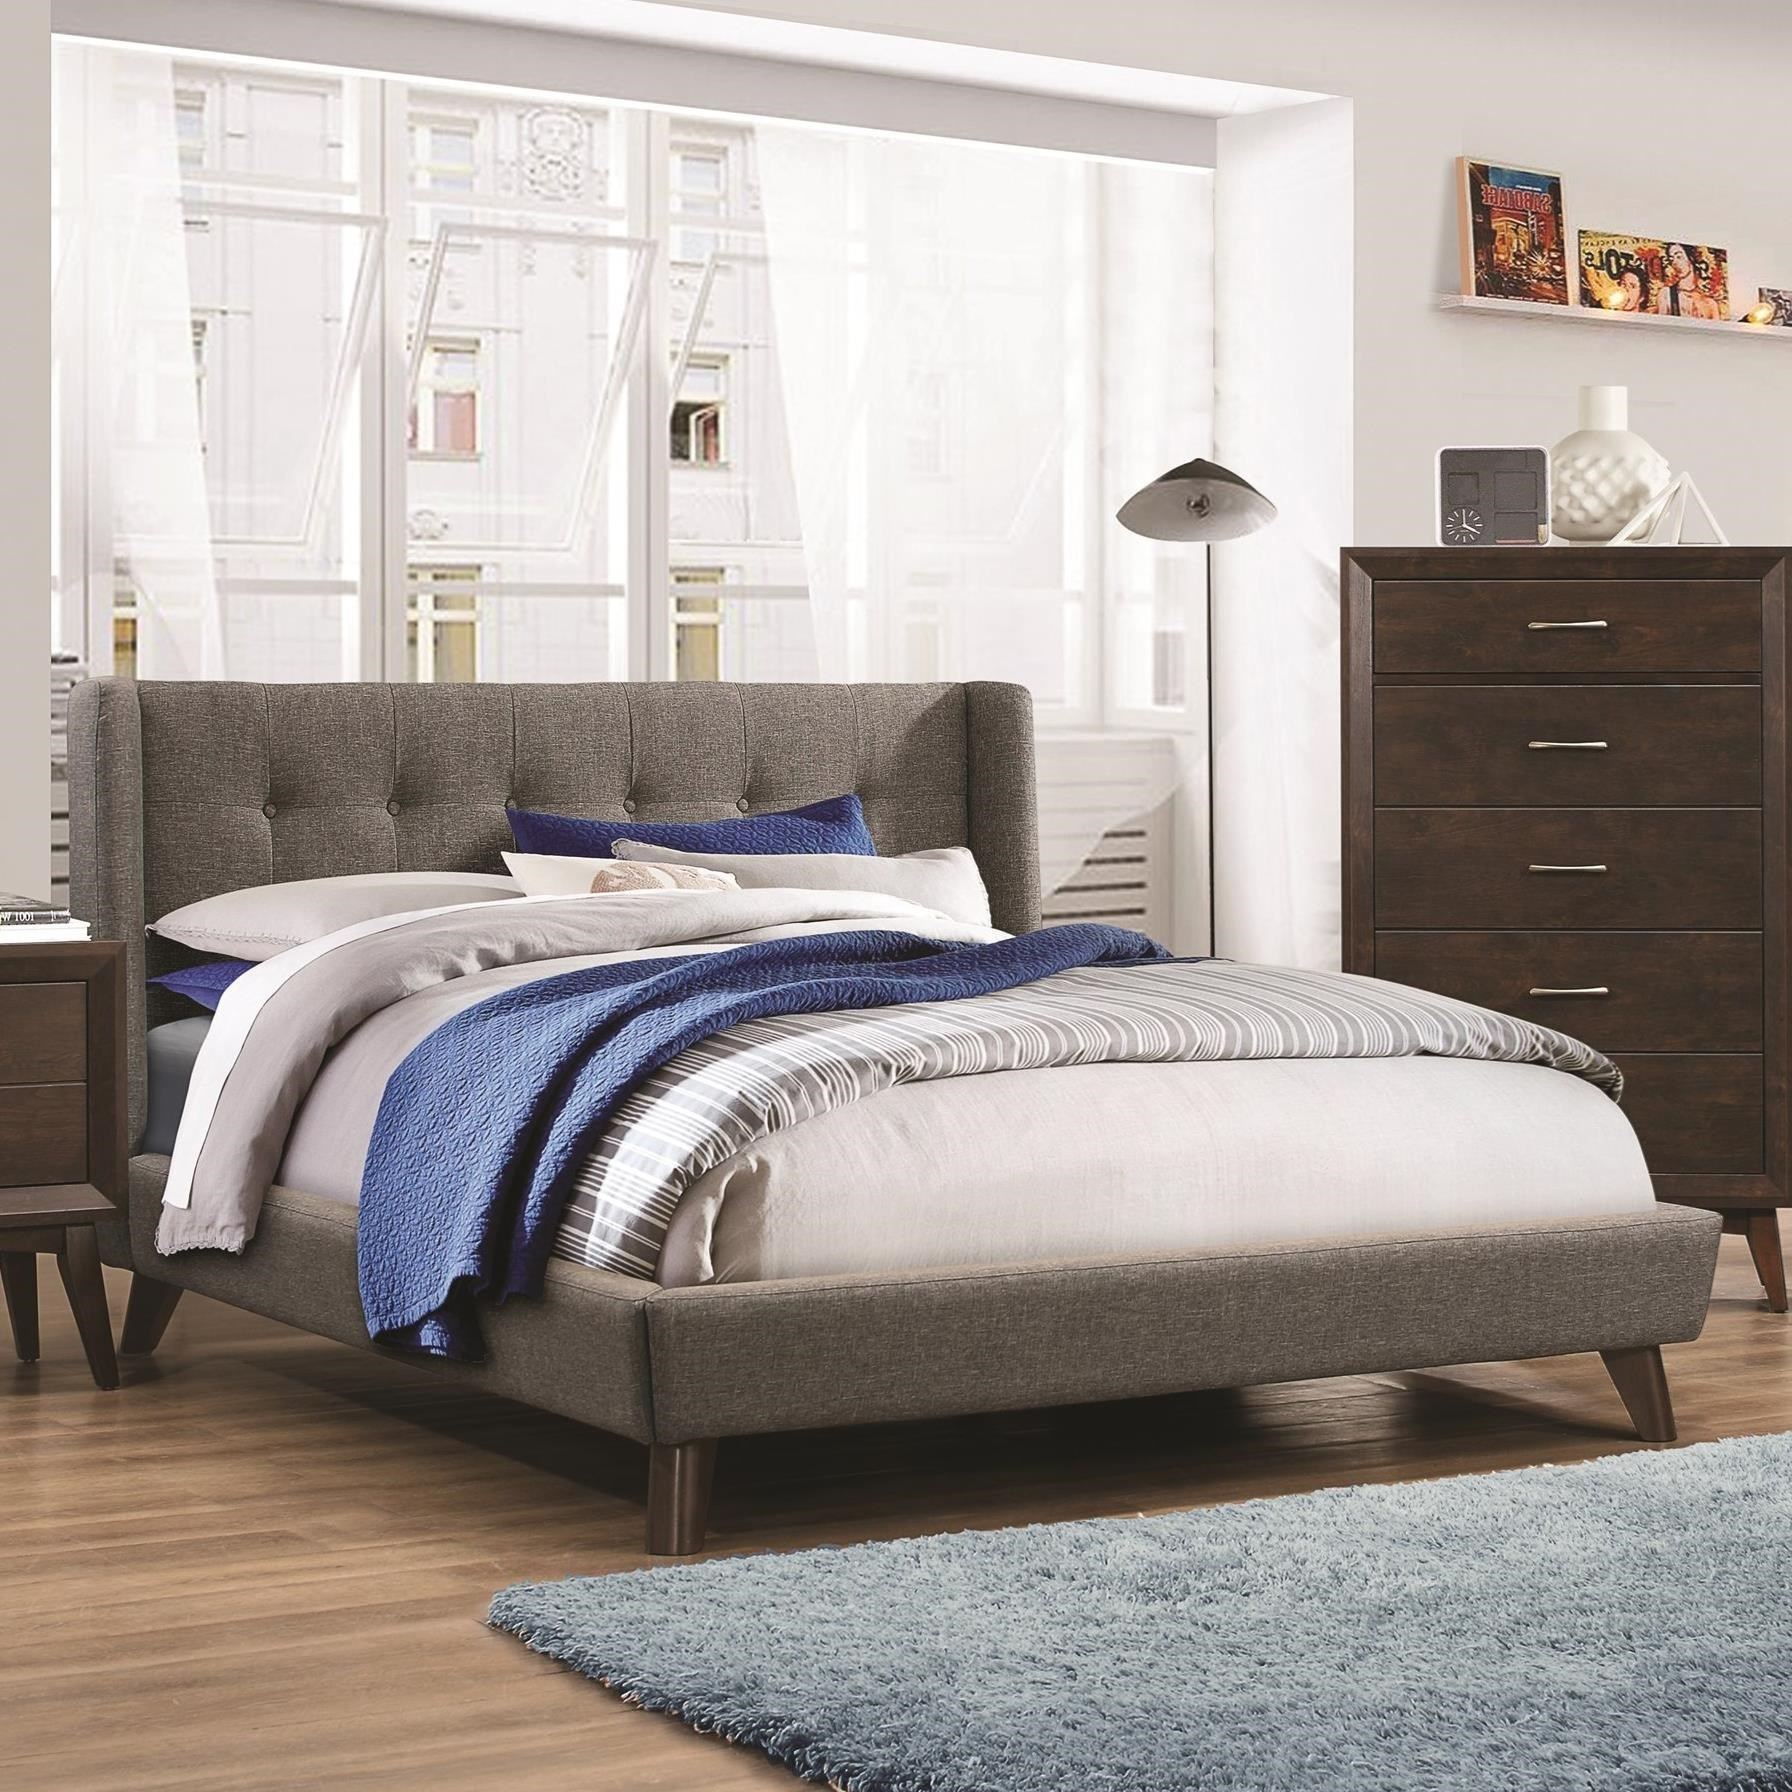 Carrington Full Bed by Coaster at Northeast Factory Direct